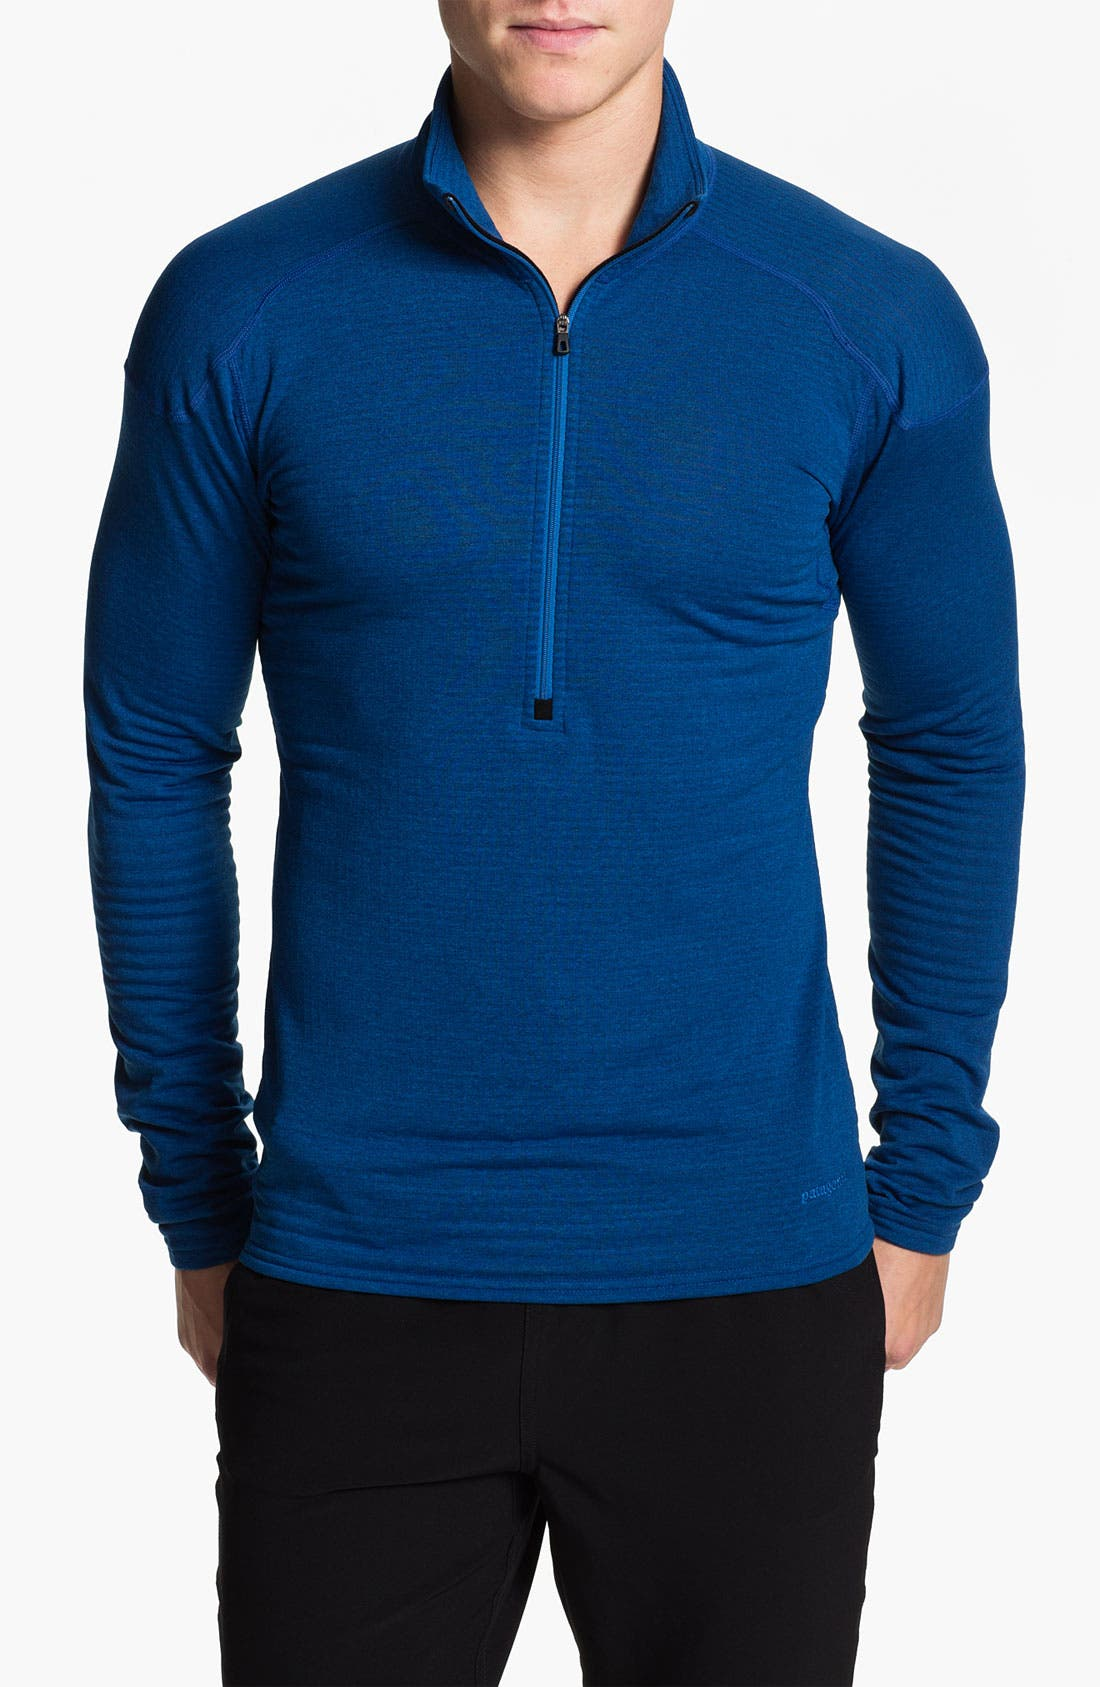 Main Image - Patagonia 'Capilene® 4' Expedition Weight Zip Neck Top (Online Only)